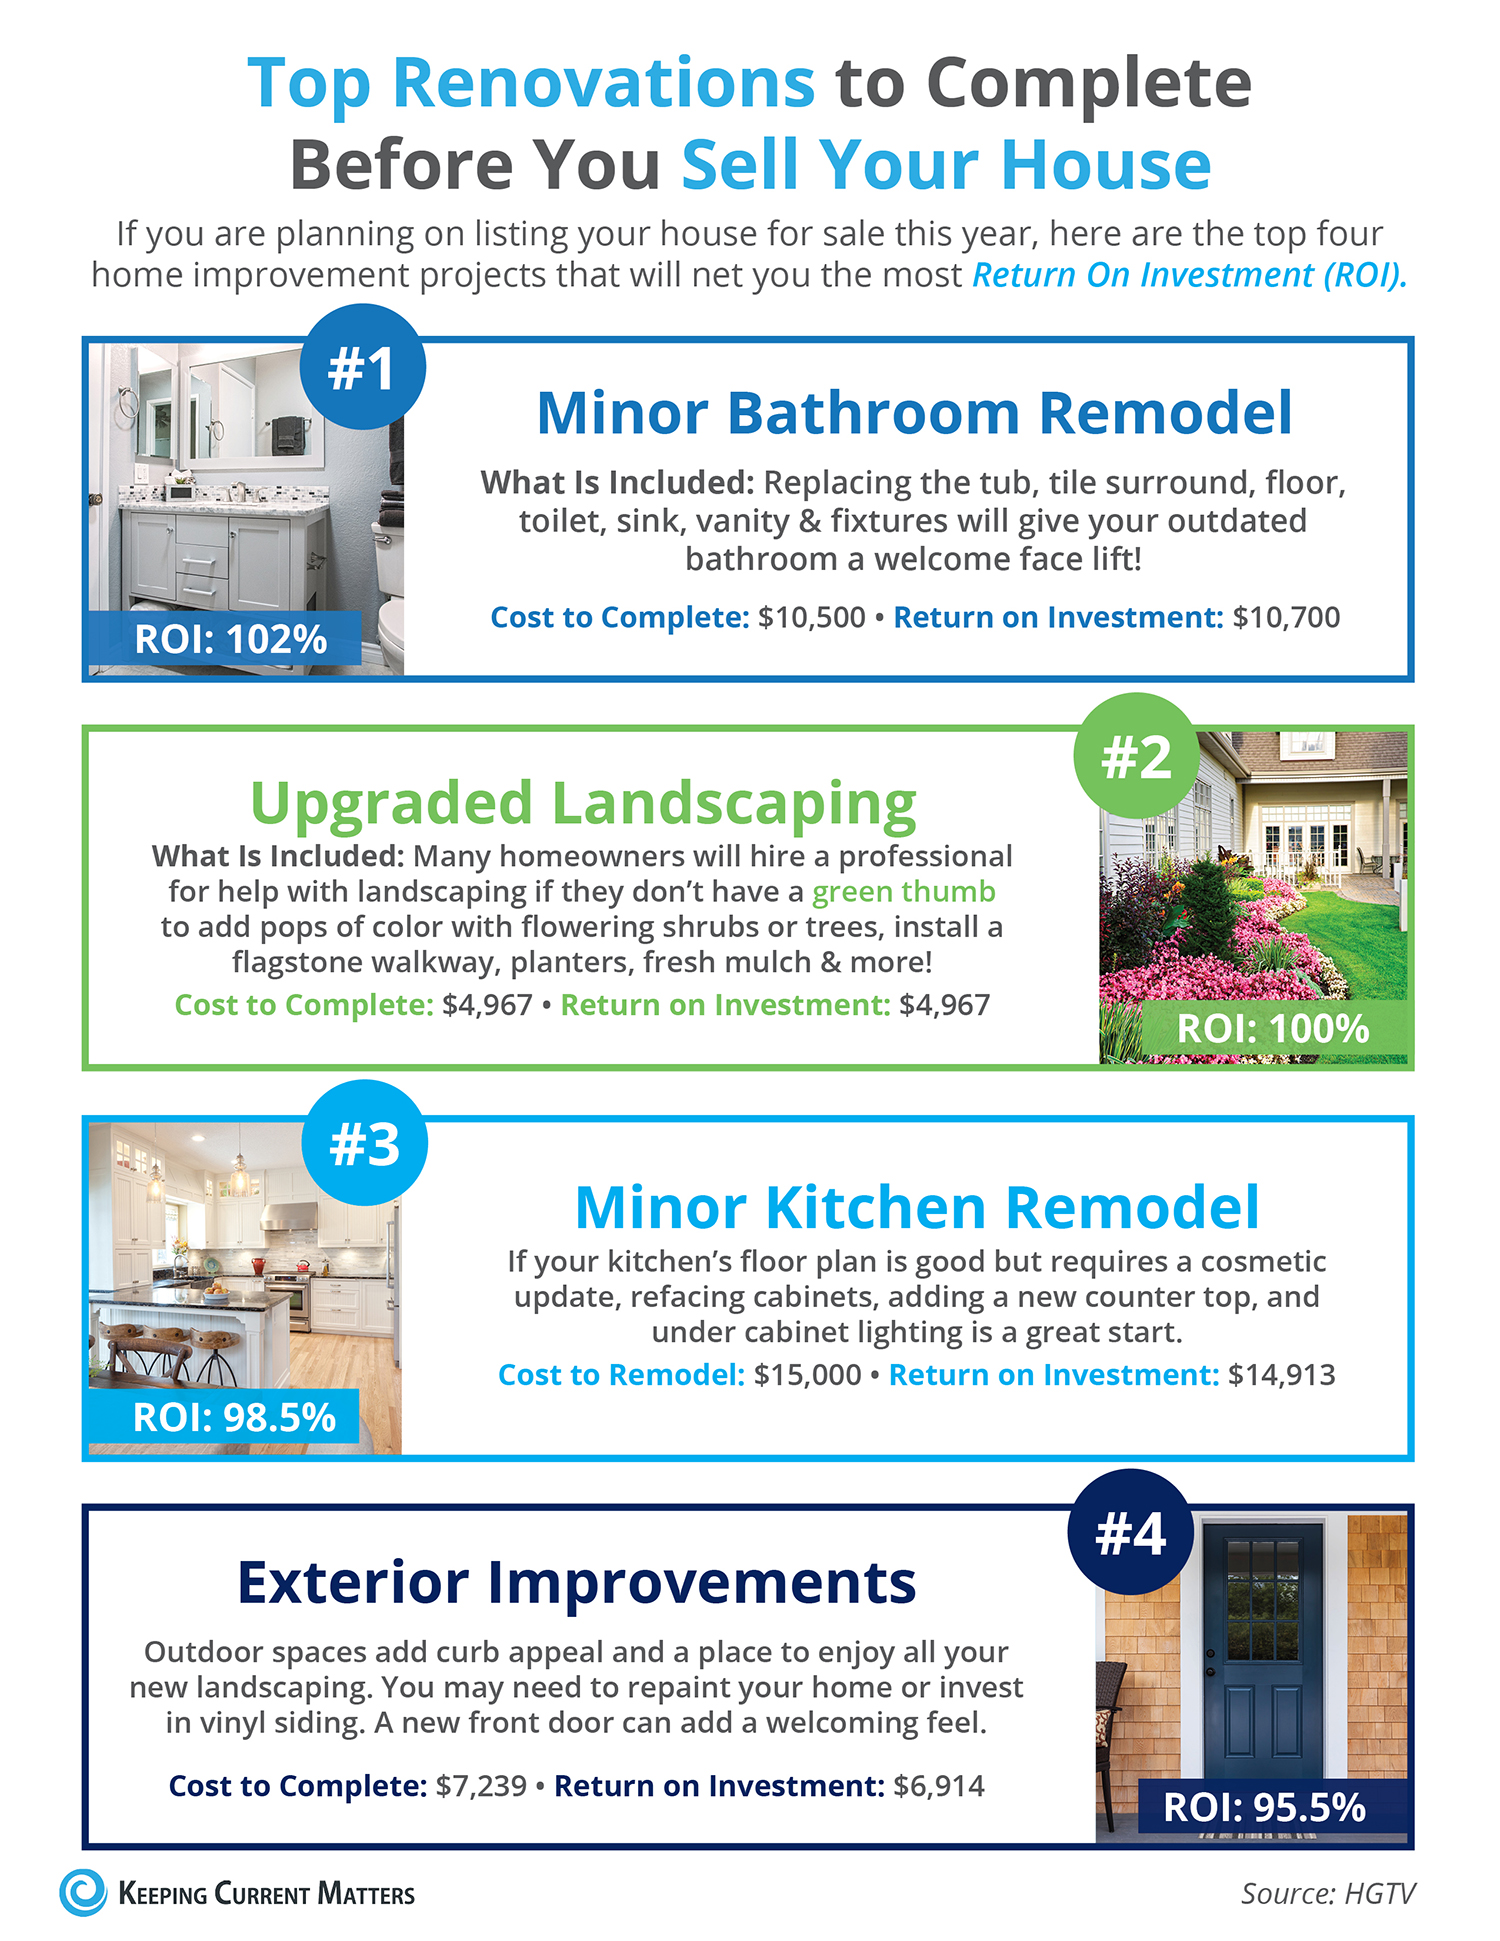 Top Renovations to Complete Before You Sell Your House [INFOGRAPHIC] | Keeping Current Matters